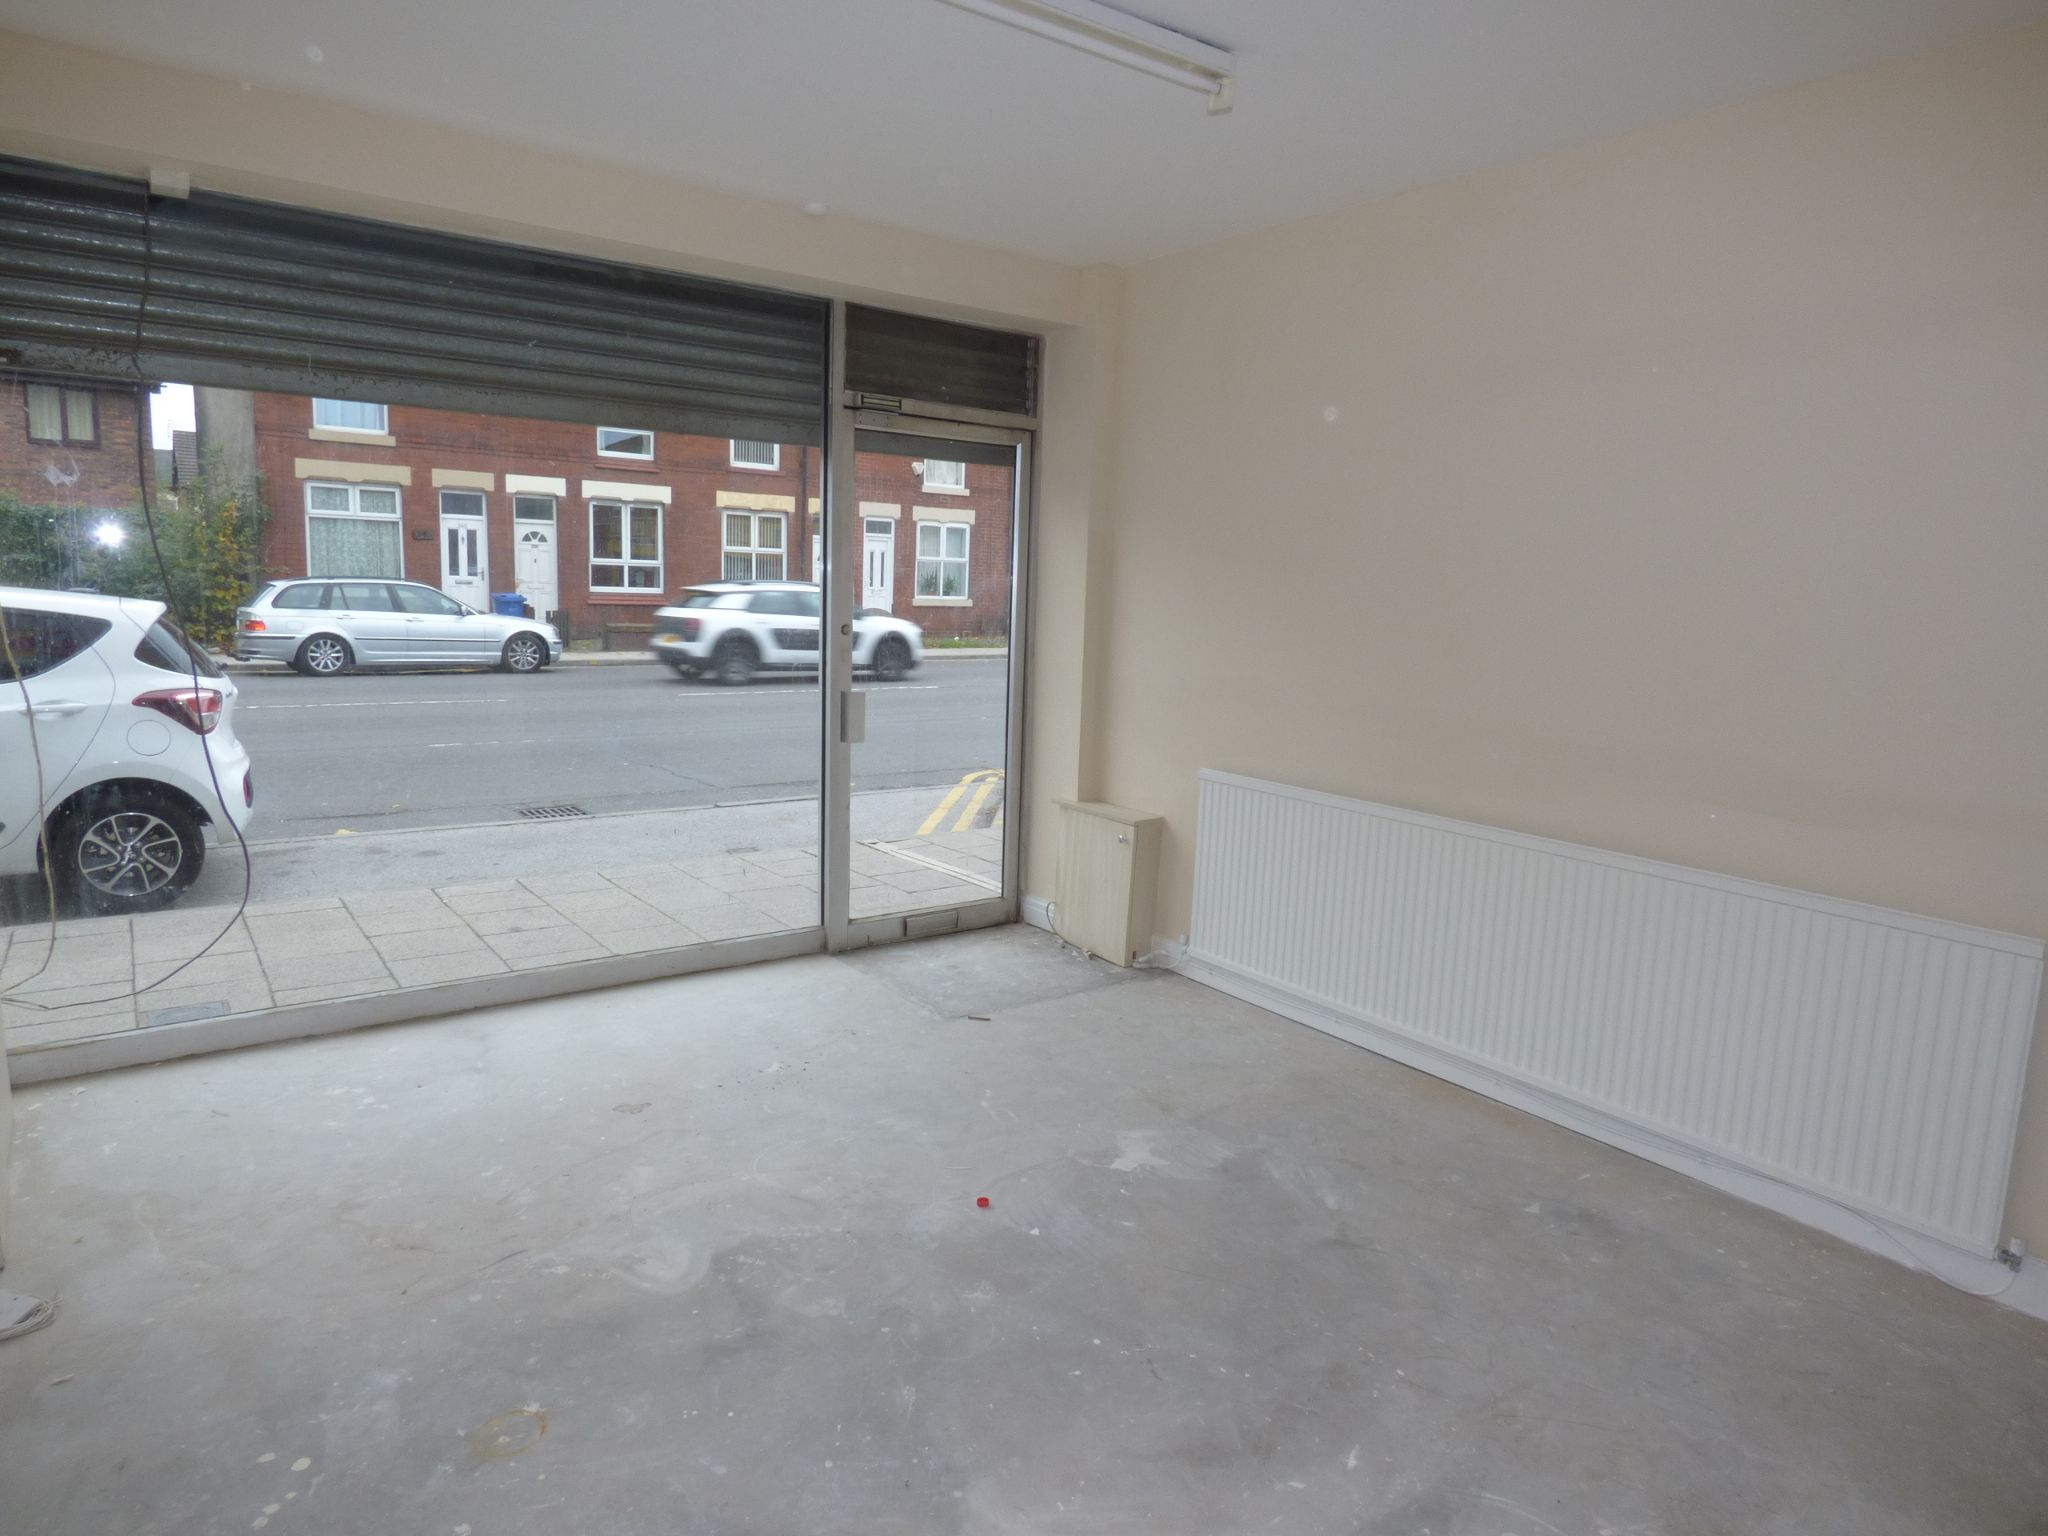 Retail Property (high Street) To Rent - Photograph 1